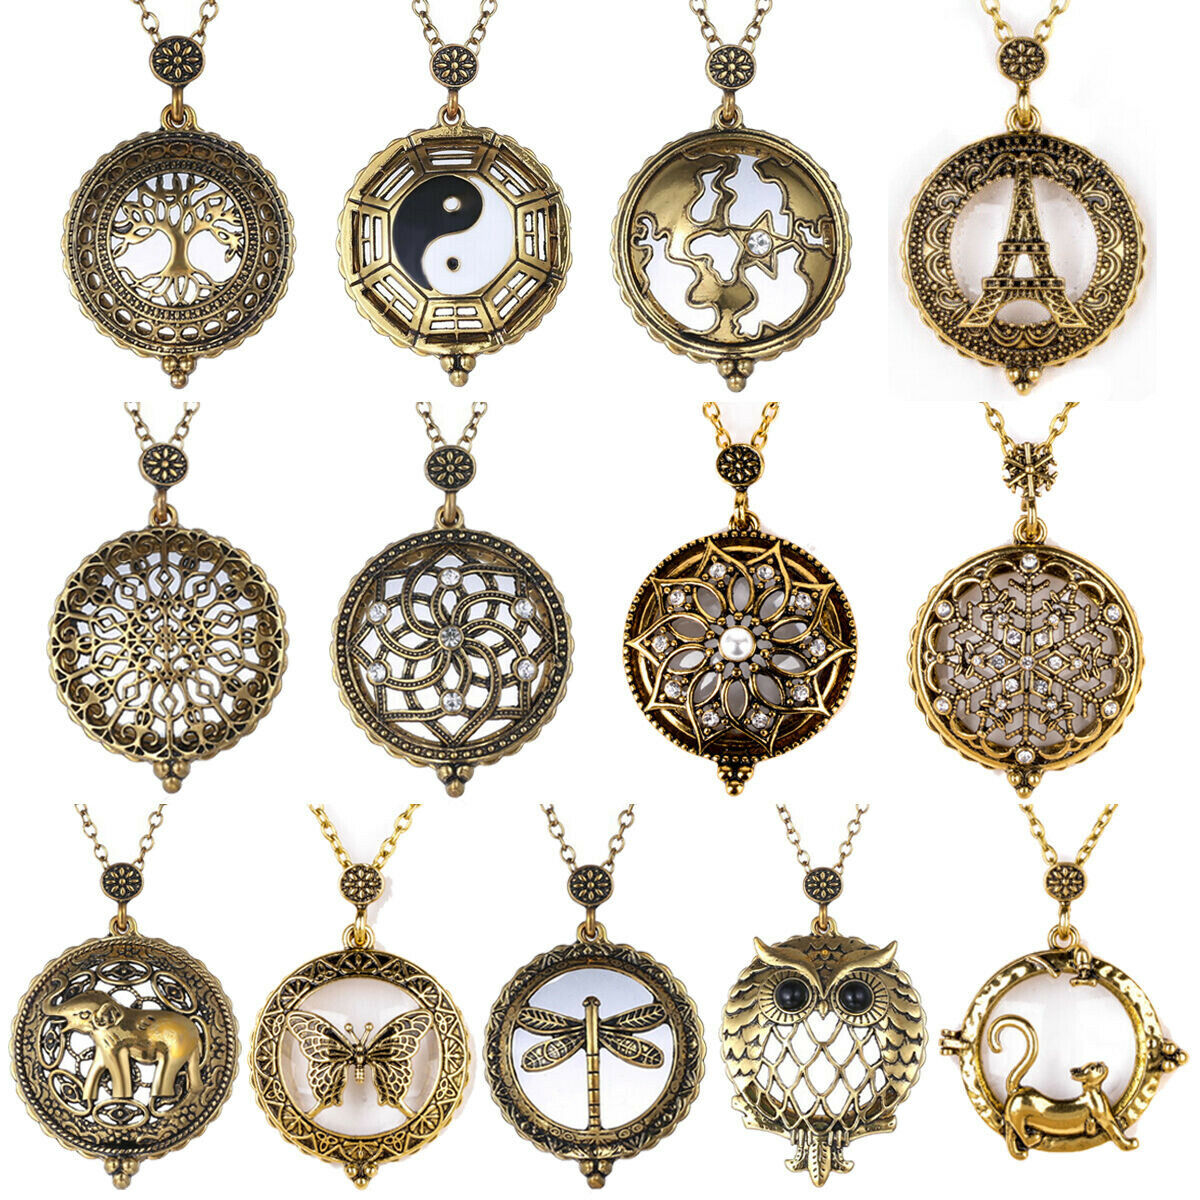 Jewellery - Vintage Chain 5X Magnifying Glass Reading Sweater Necklace Magnifier Pendant